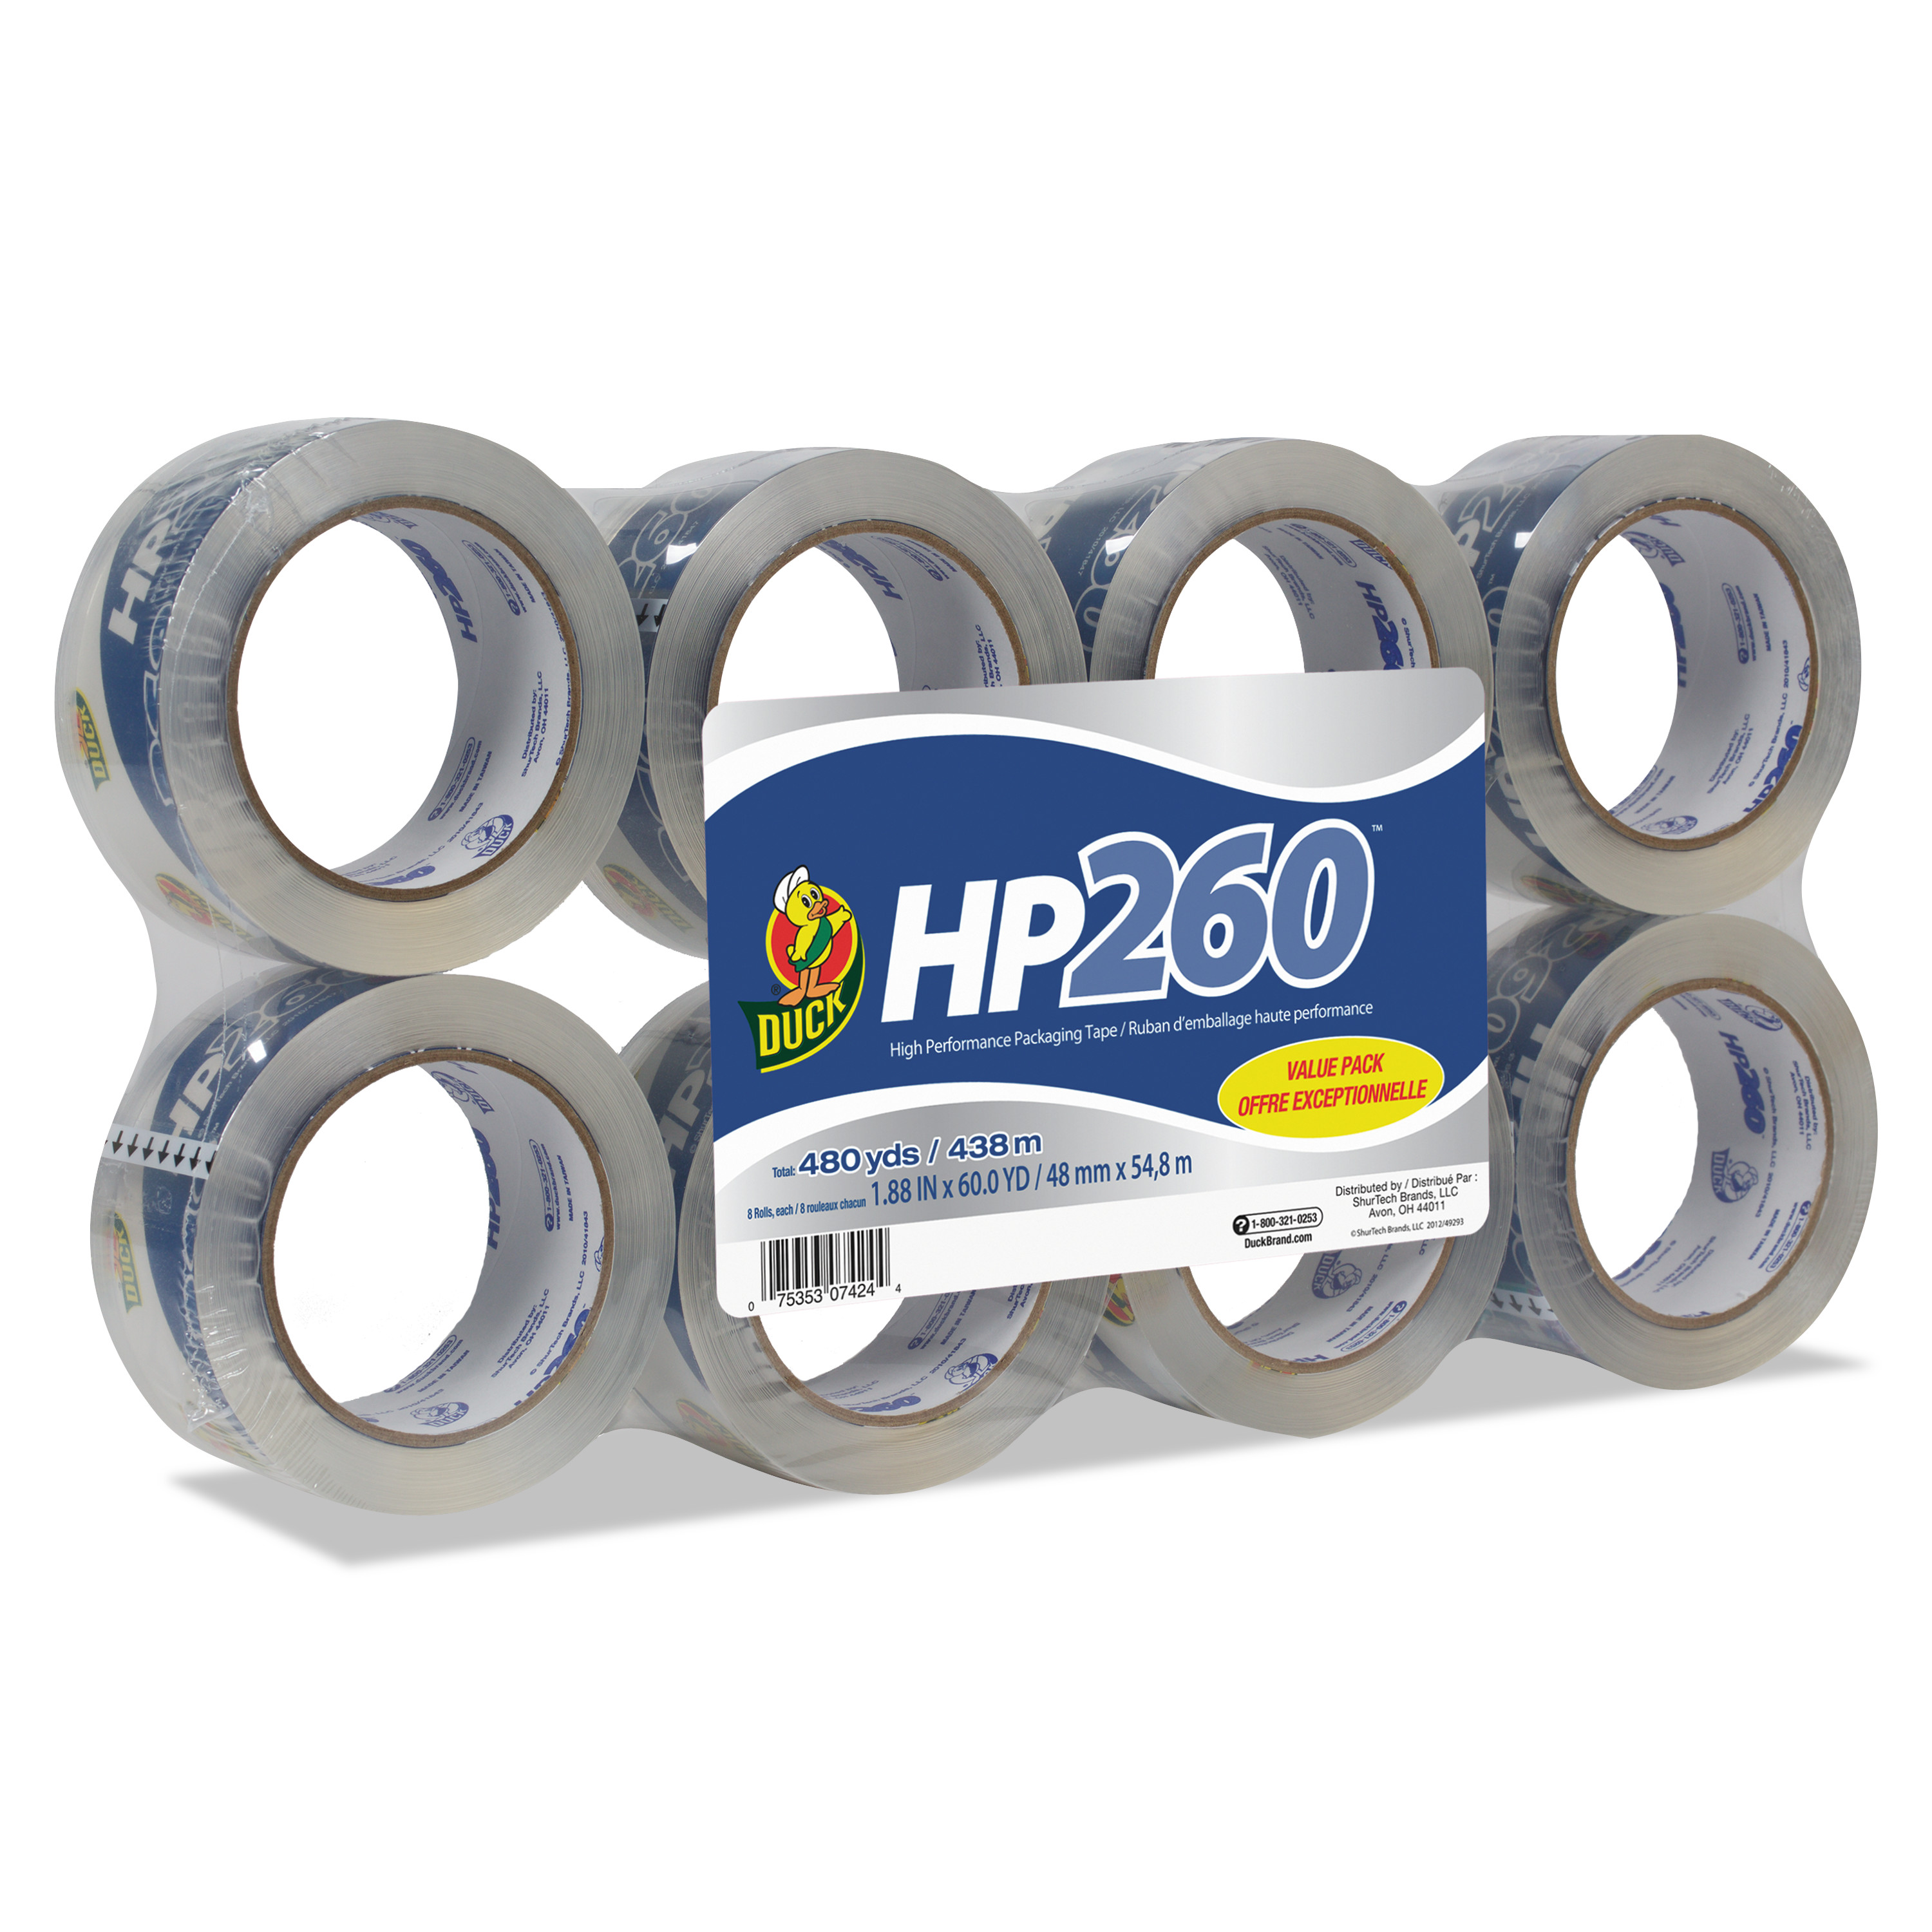 Duck Brand HP260 Packaging Tape, 1.88 in. x 60 yd., Clear, 8-Count